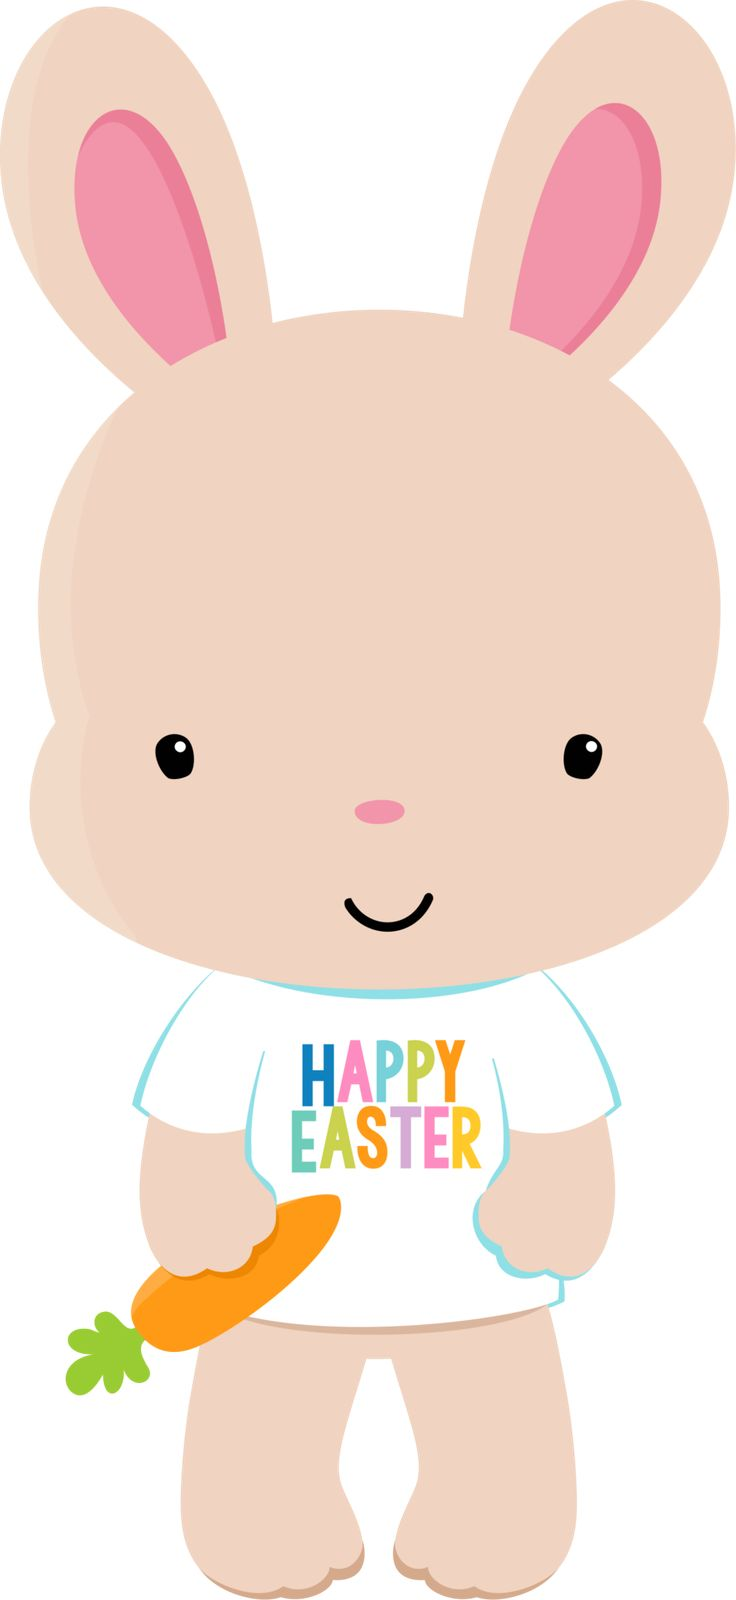 Emo clipart happy easter Clipart 506 best Images Happy